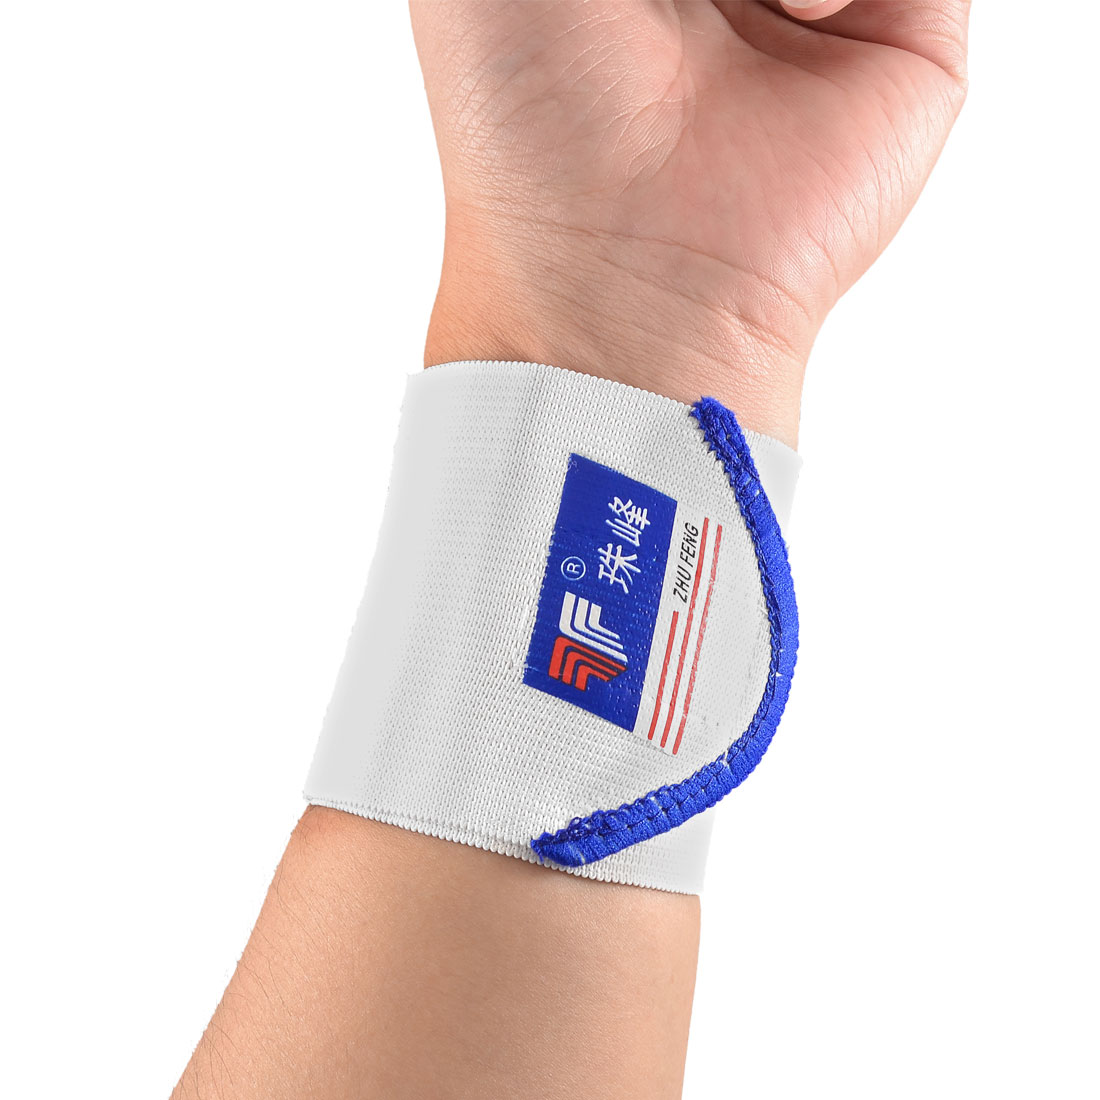 Pair Hoop Loop Closure Sports Protecting Elastic Wrist Support Sleeve White